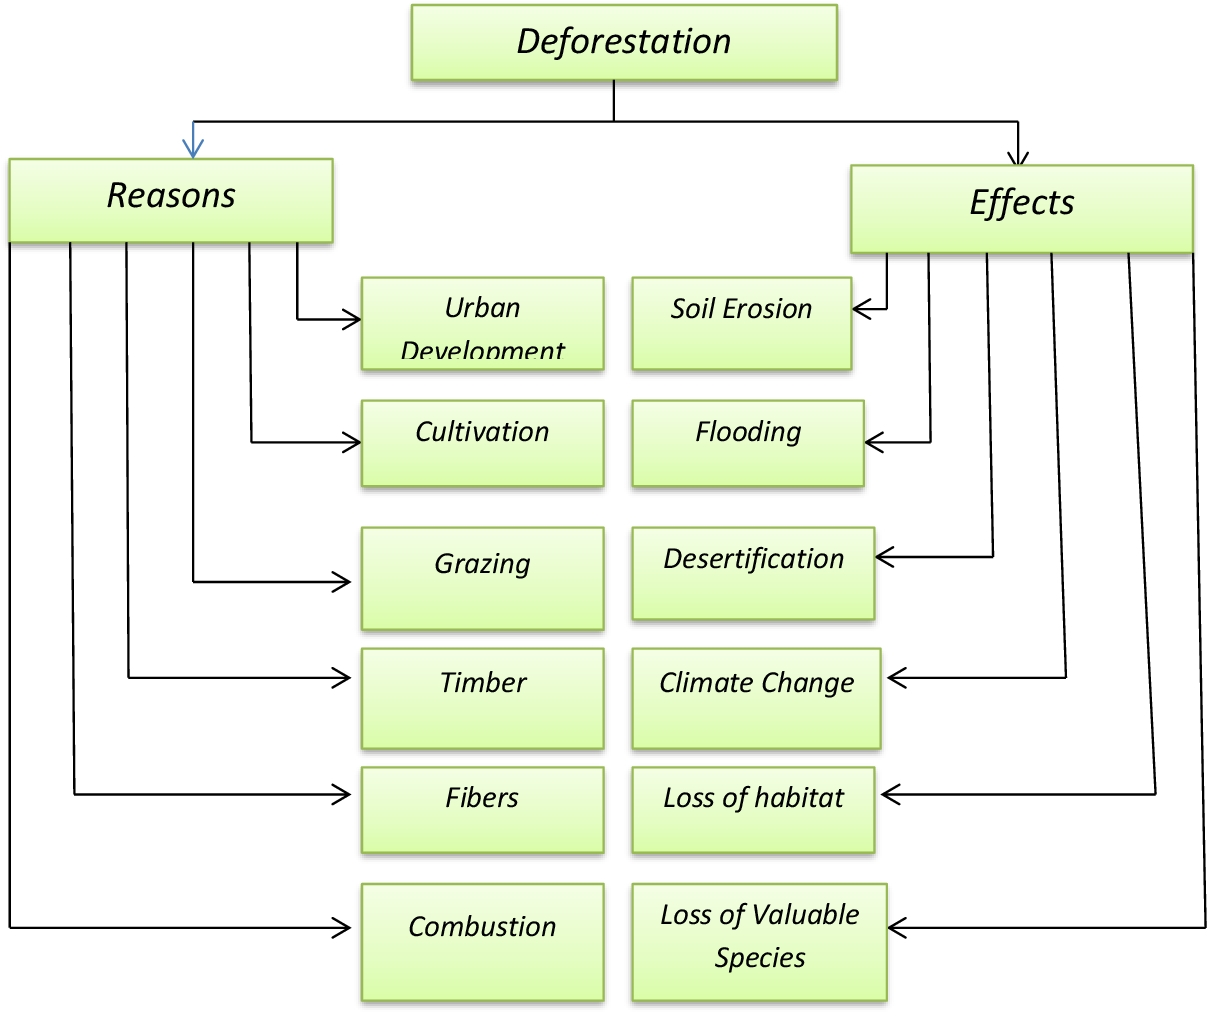 Deforestation Effects Diagram